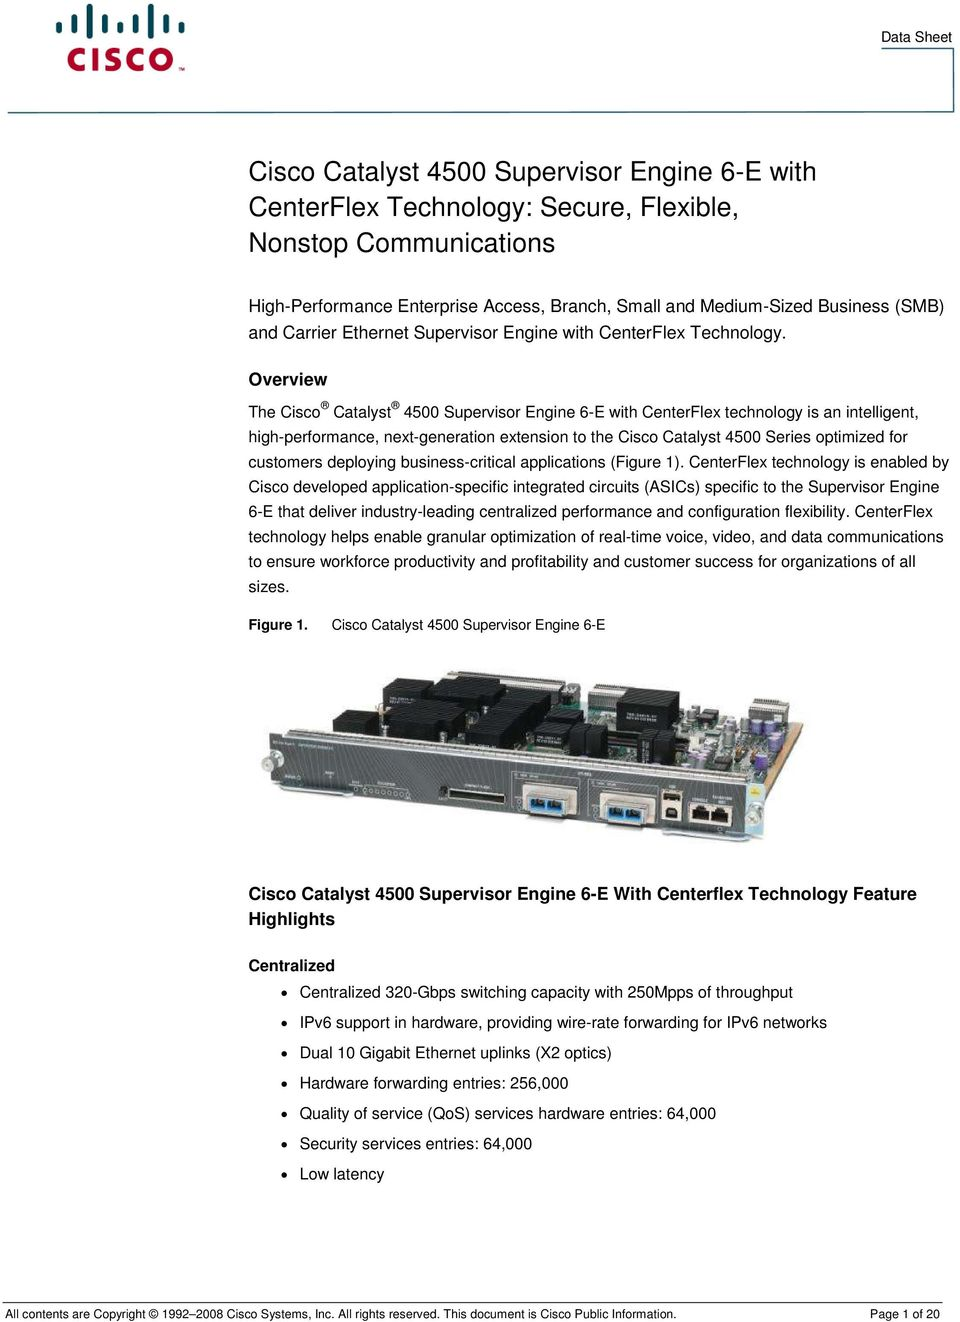 Overview The Cisco Catalyst 4500 Supervisor Engine 6-E with CenterFlex technology is an intelligent, high-performance, next-generation extension to the Cisco Catalyst 4500 Series optimized for